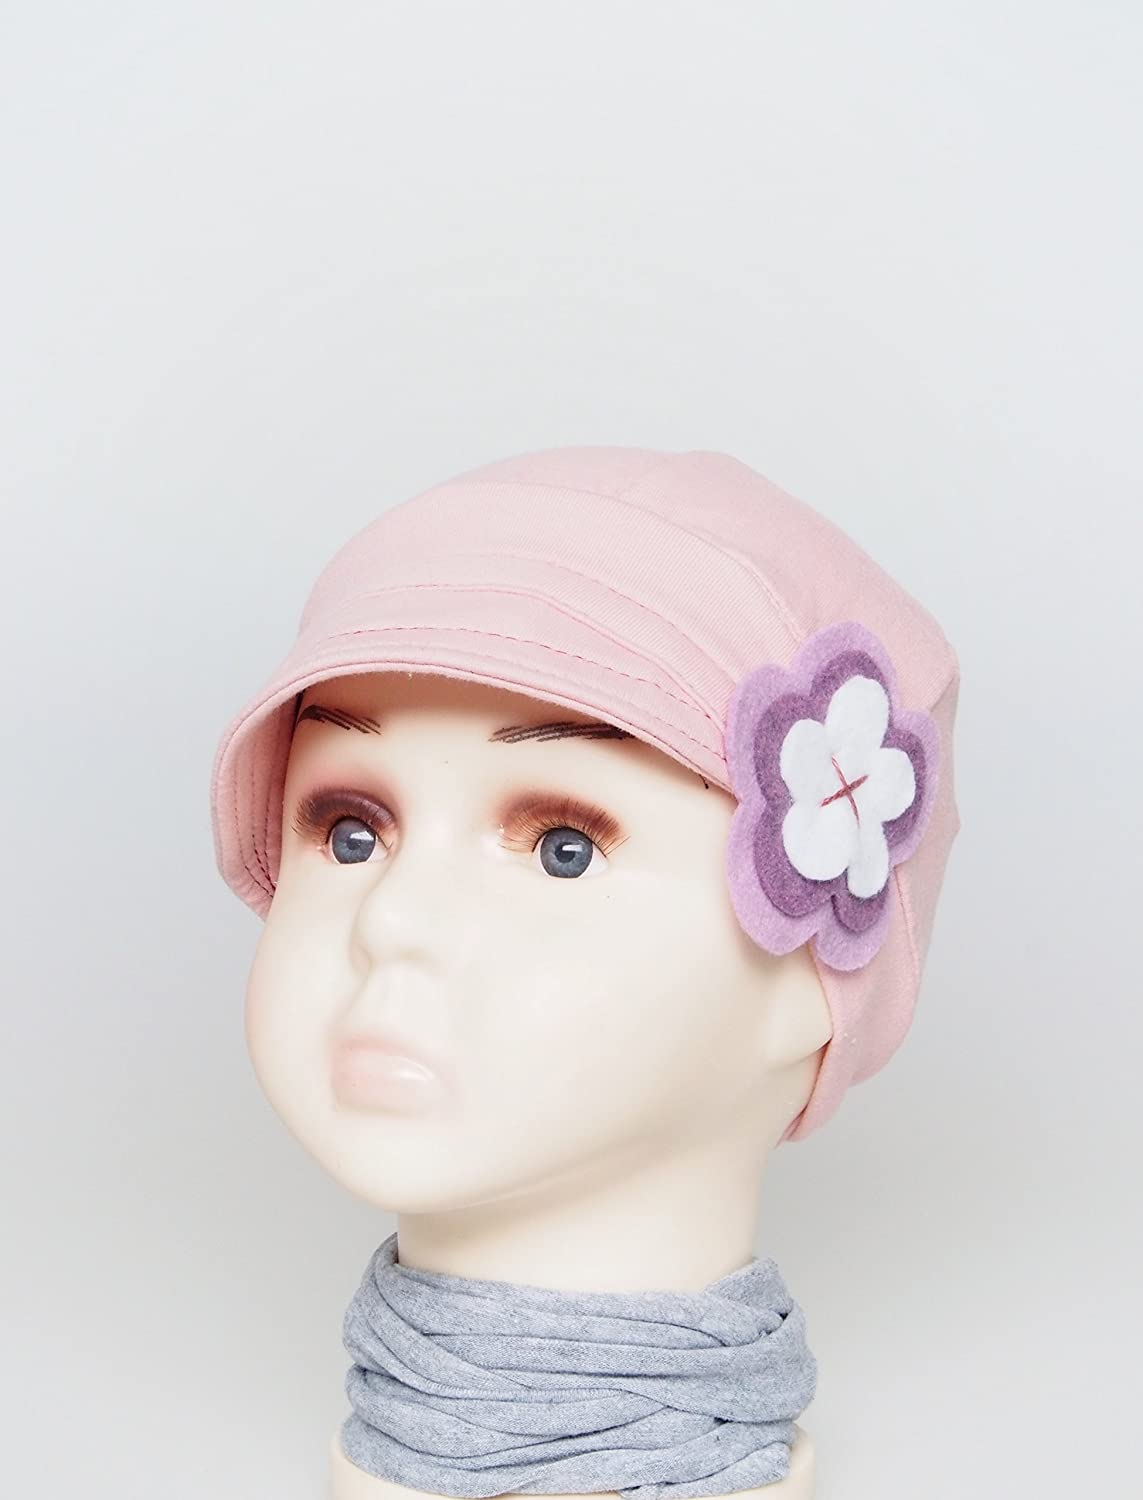 Chemo hat for children, Toddler, alopecia cap by Muluk, Cotton Beanie for kids